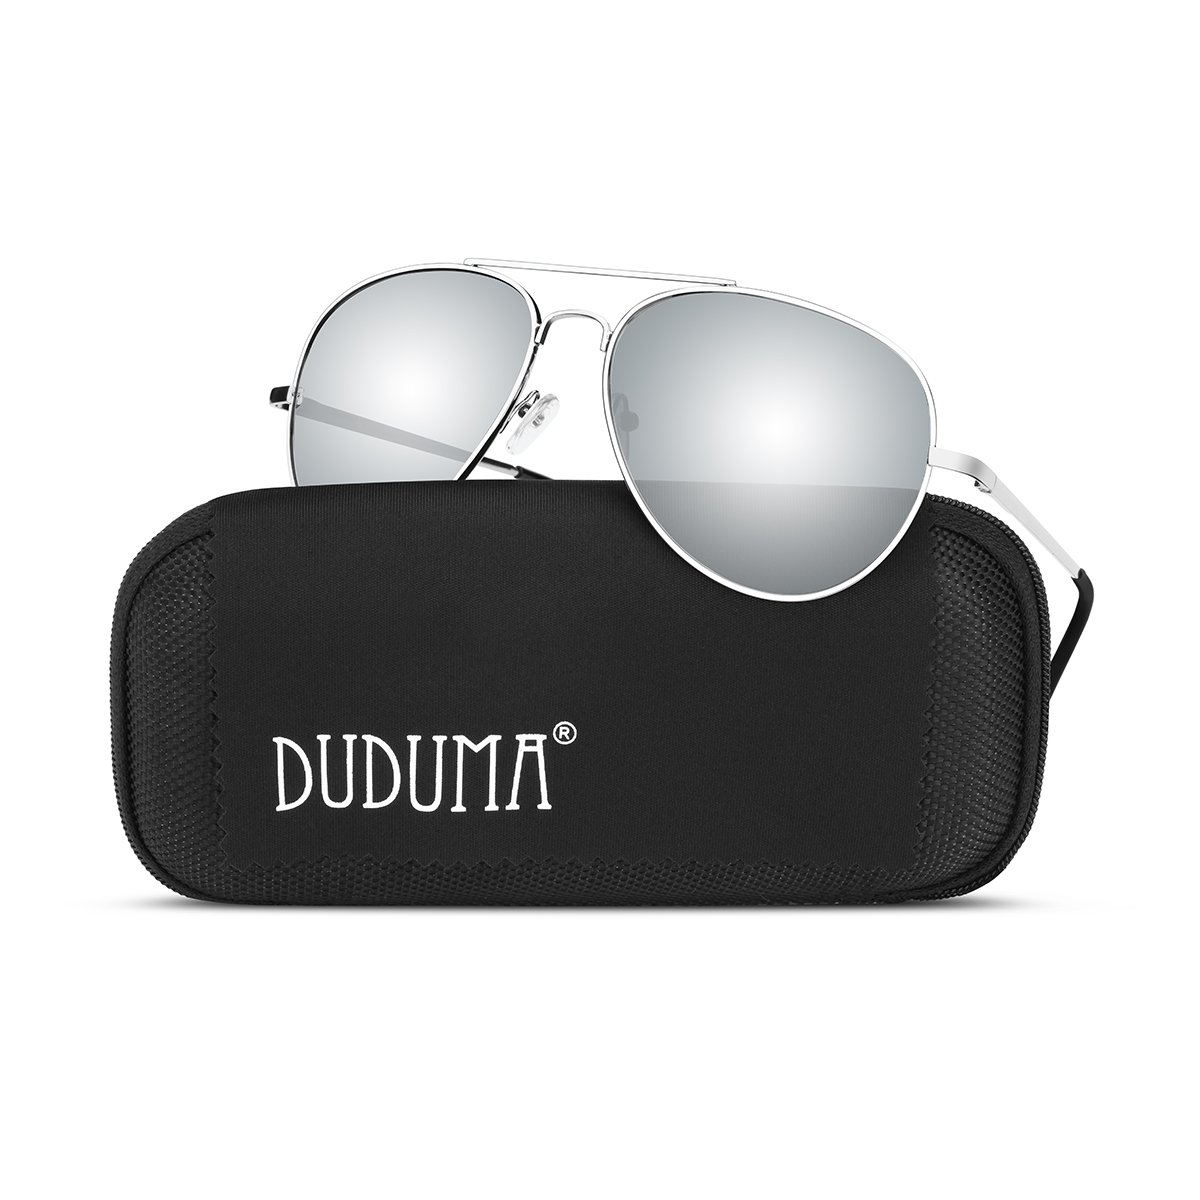 Duduma Premium Full Mirrored Aviator Sunglasses w/Flash Mirror Lens Uv400(Silver frame/Silver mirror lens) by Duduma